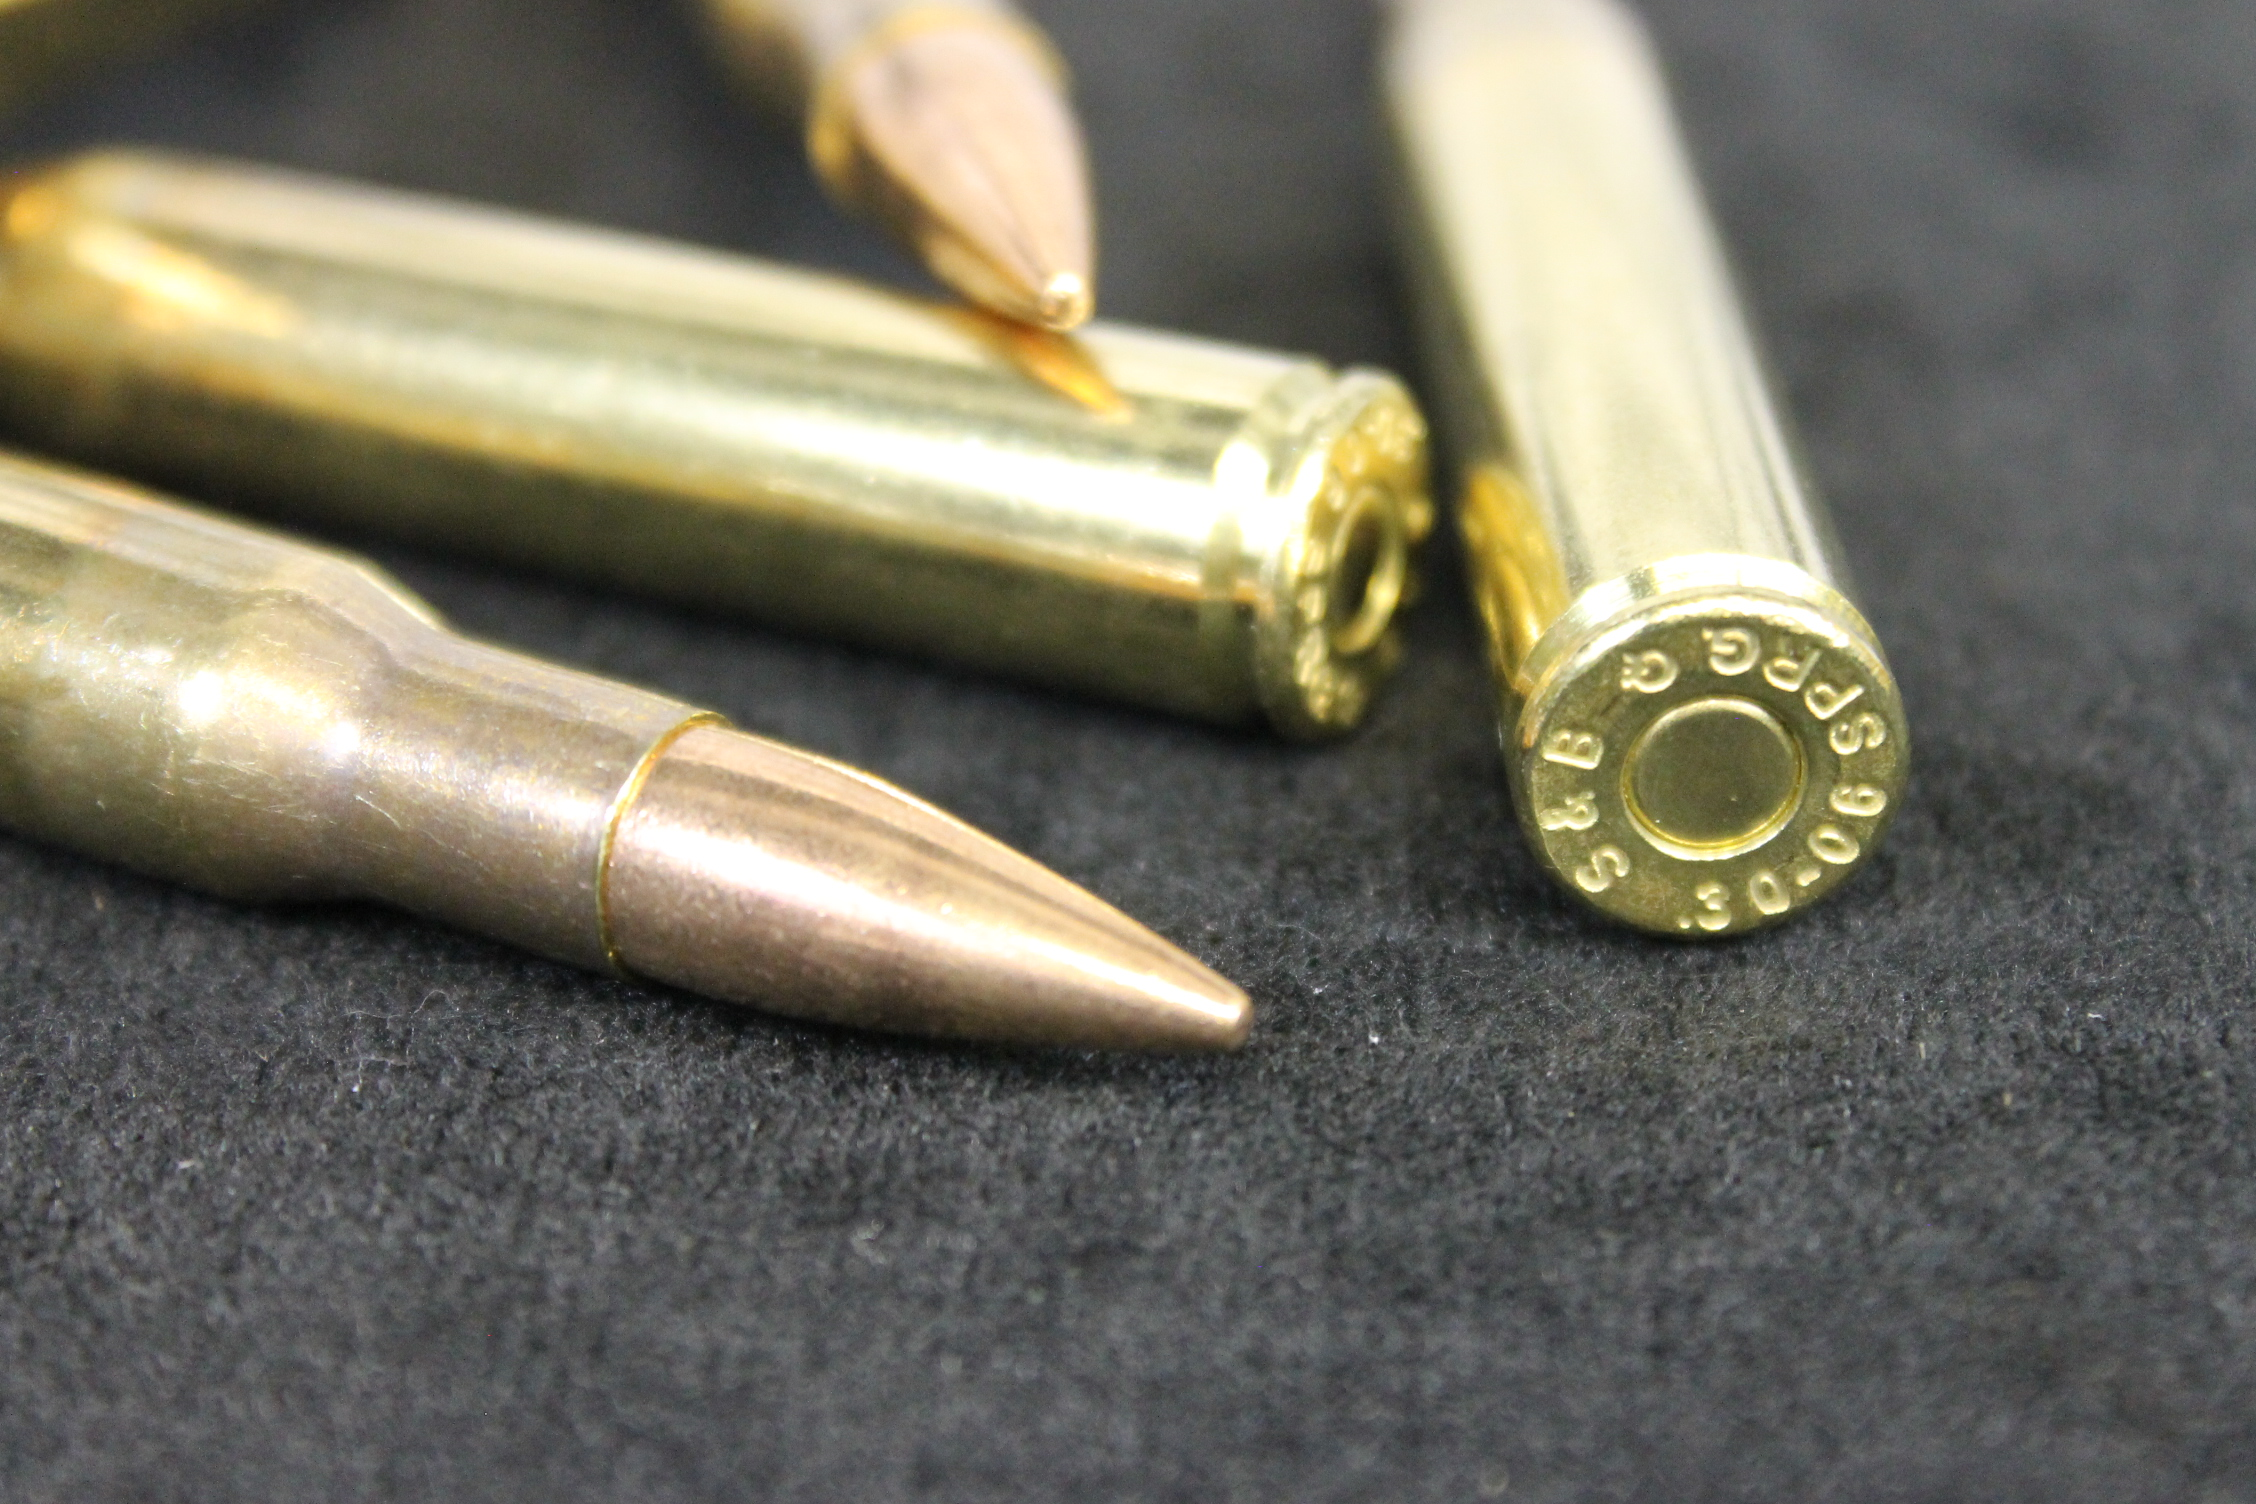 M1 garand ammunition orion 7 1st quality sellier belloit ammunition made with the finest components usgi 150 grain m2 ball loading and custom loaded by sb for your m1 garand yelopaper Gallery